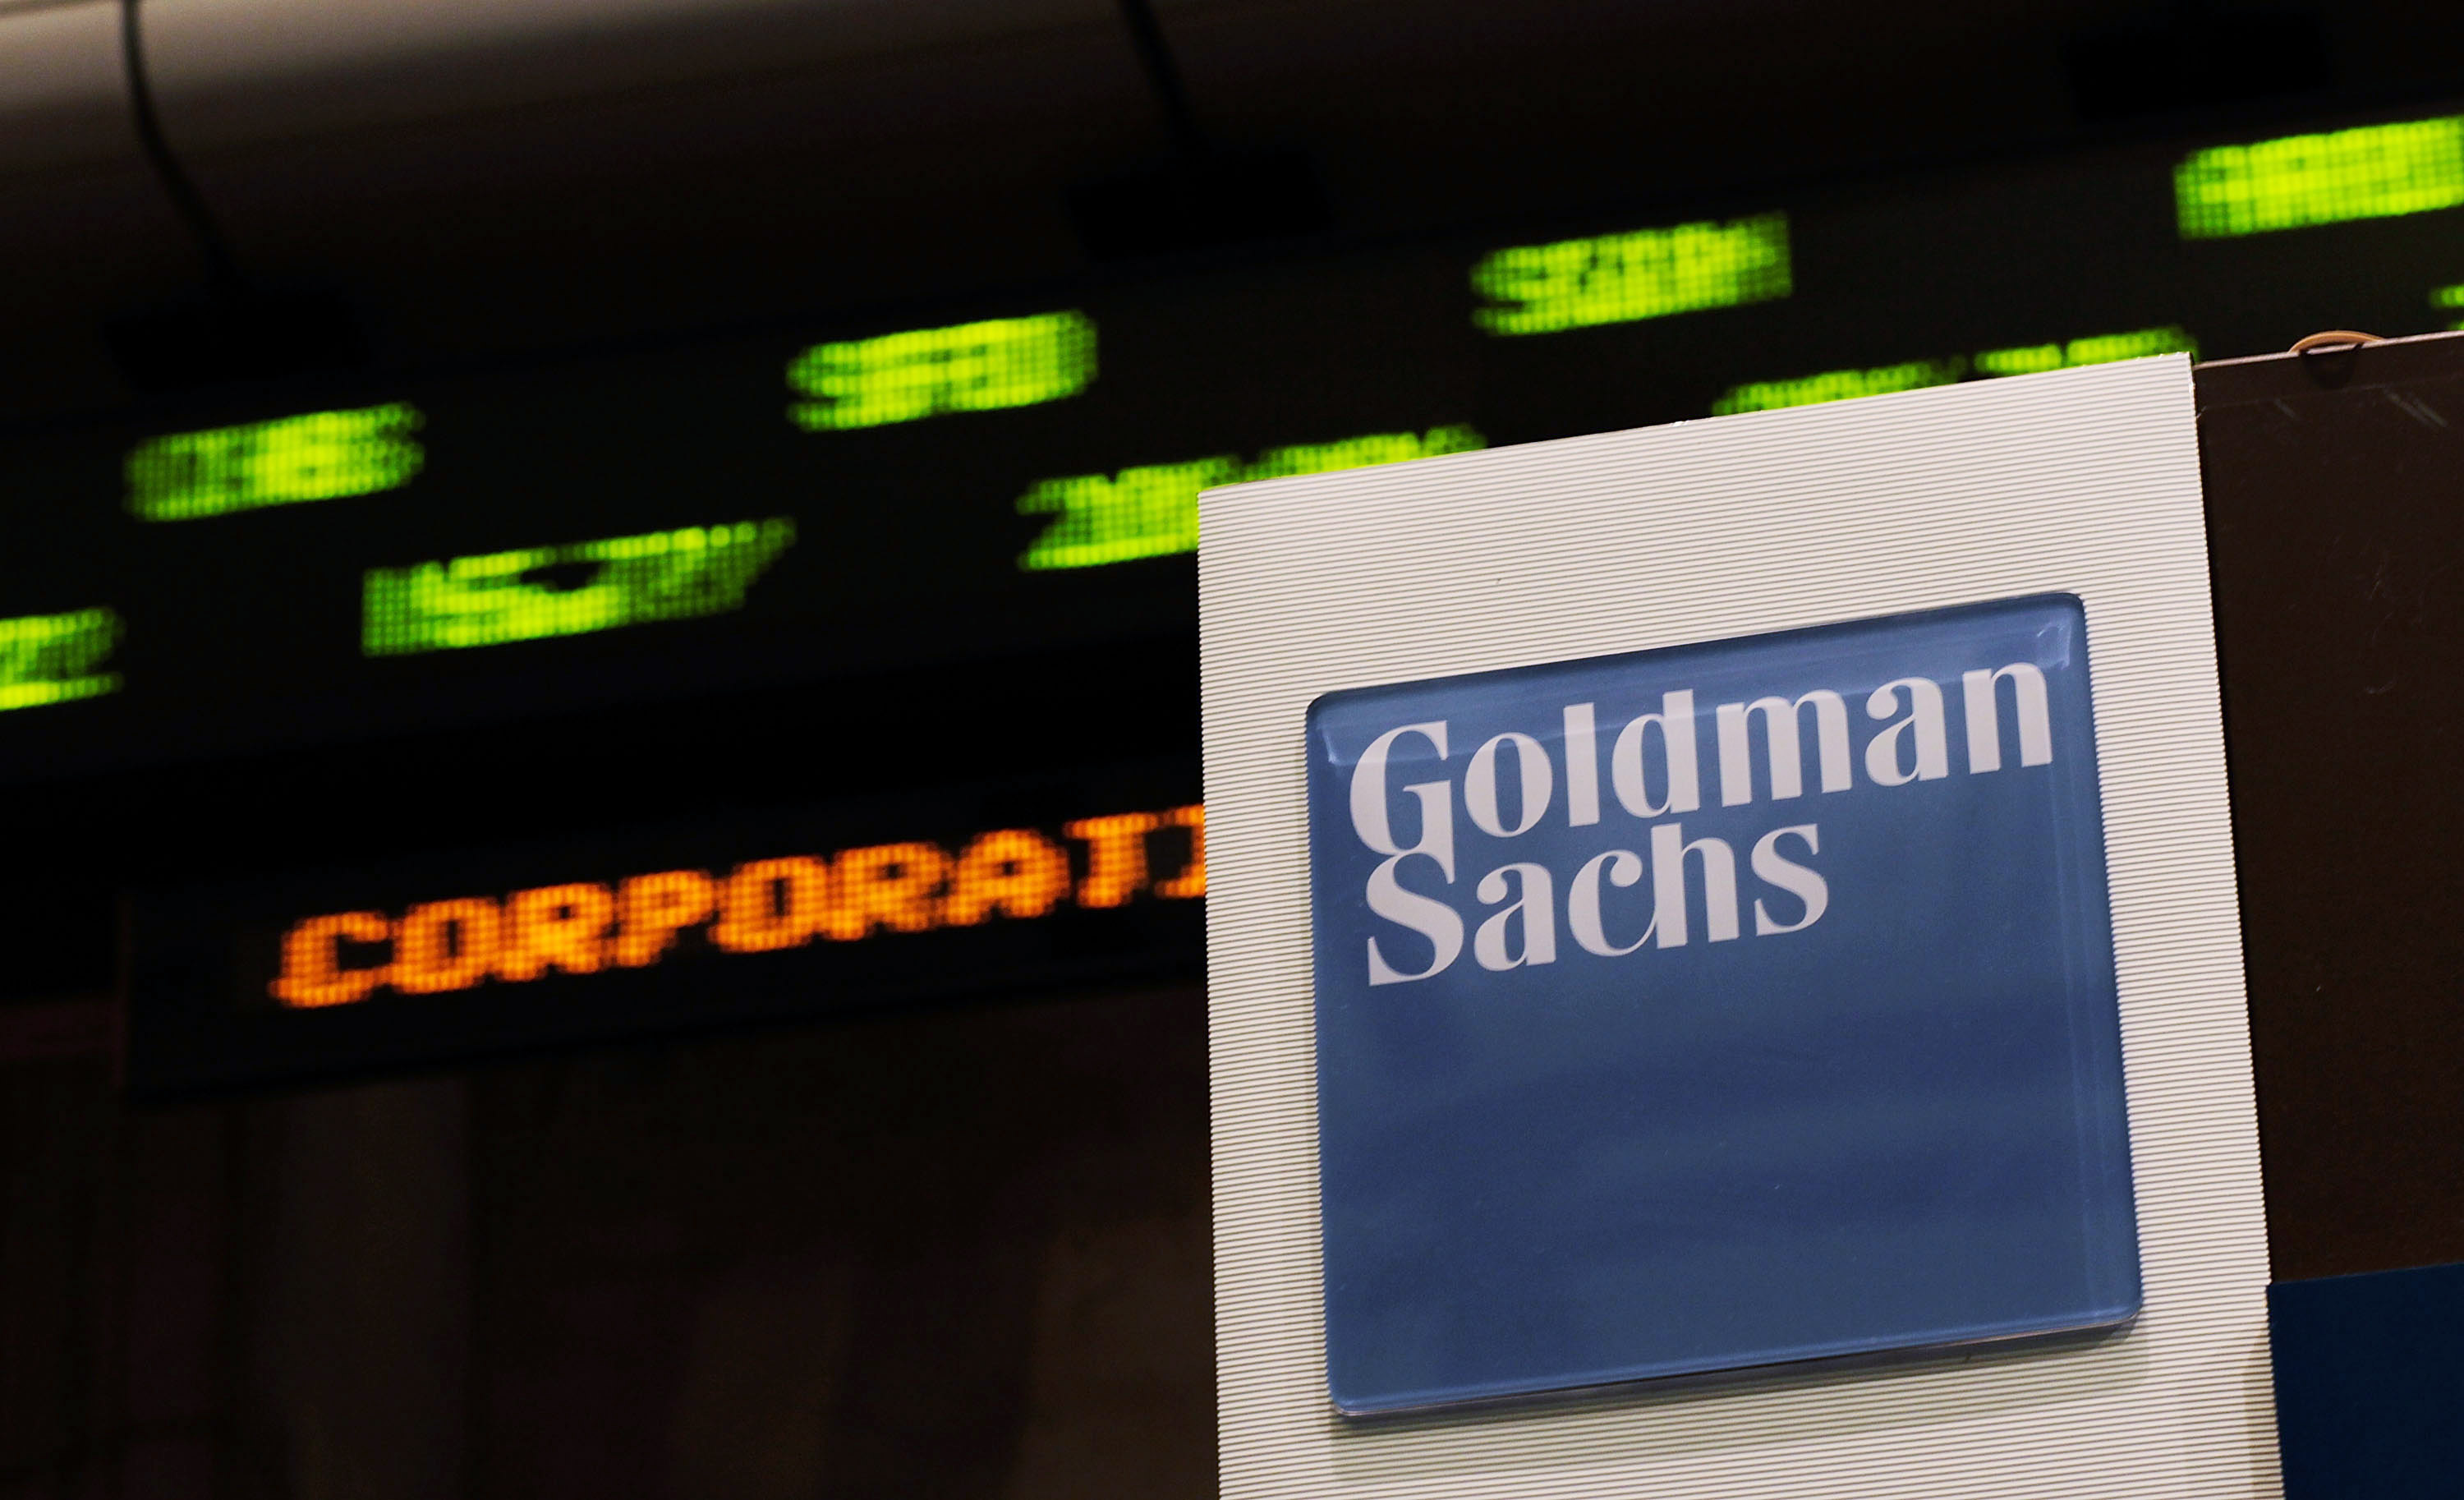 Goldman Sachs introduces gender quota for floats